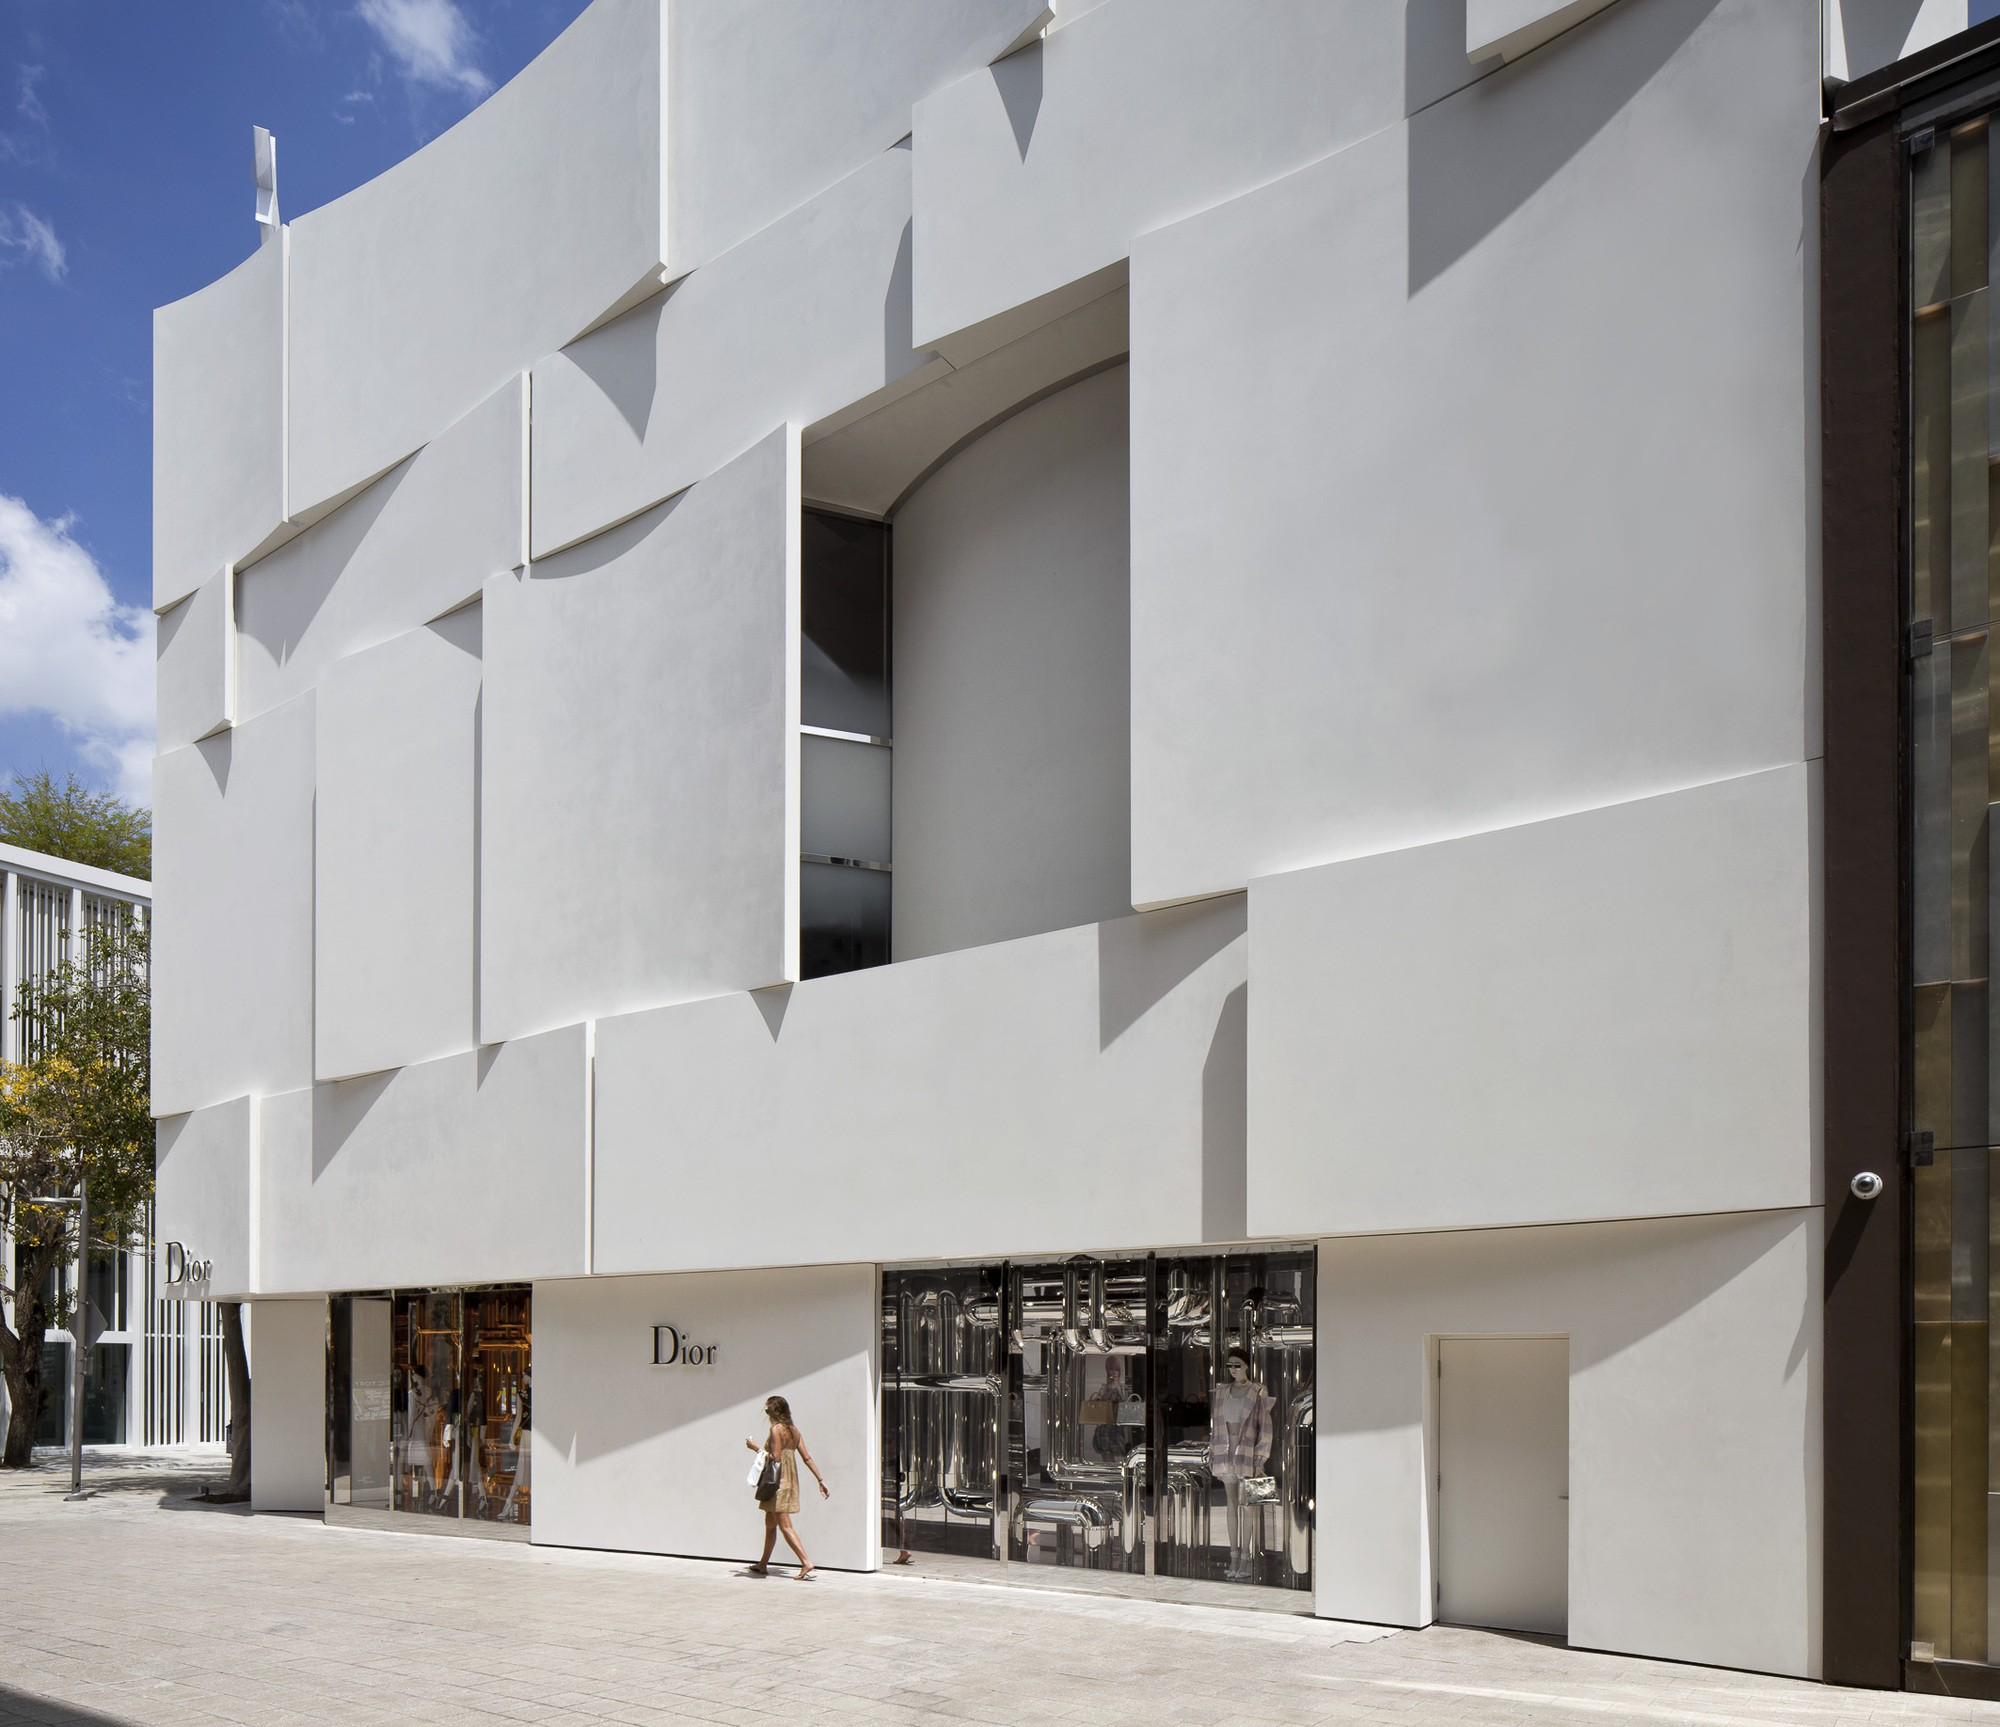 Dior Miami Facade-yesonfashion-com-13